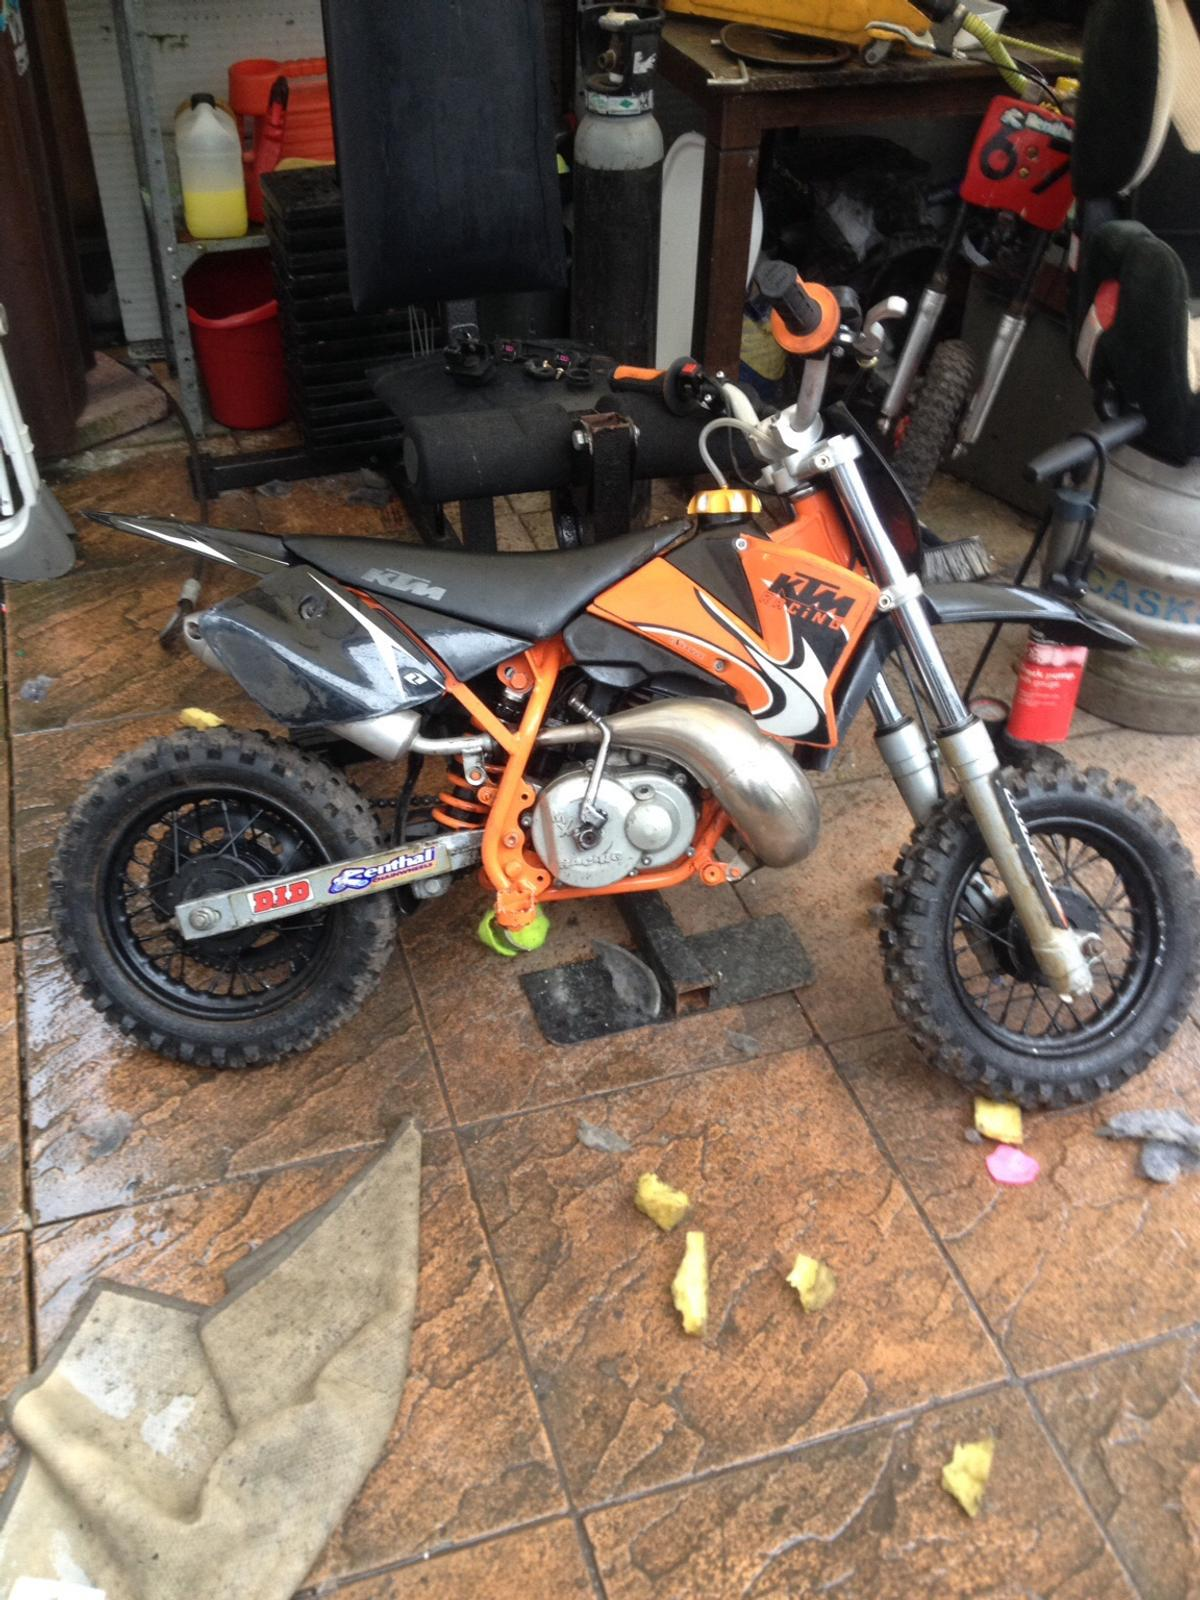 Magnificent Ktm 50 Sx Junior 2001 In Wigan For 600 00 For Sale Shpock Caraccident5 Cool Chair Designs And Ideas Caraccident5Info